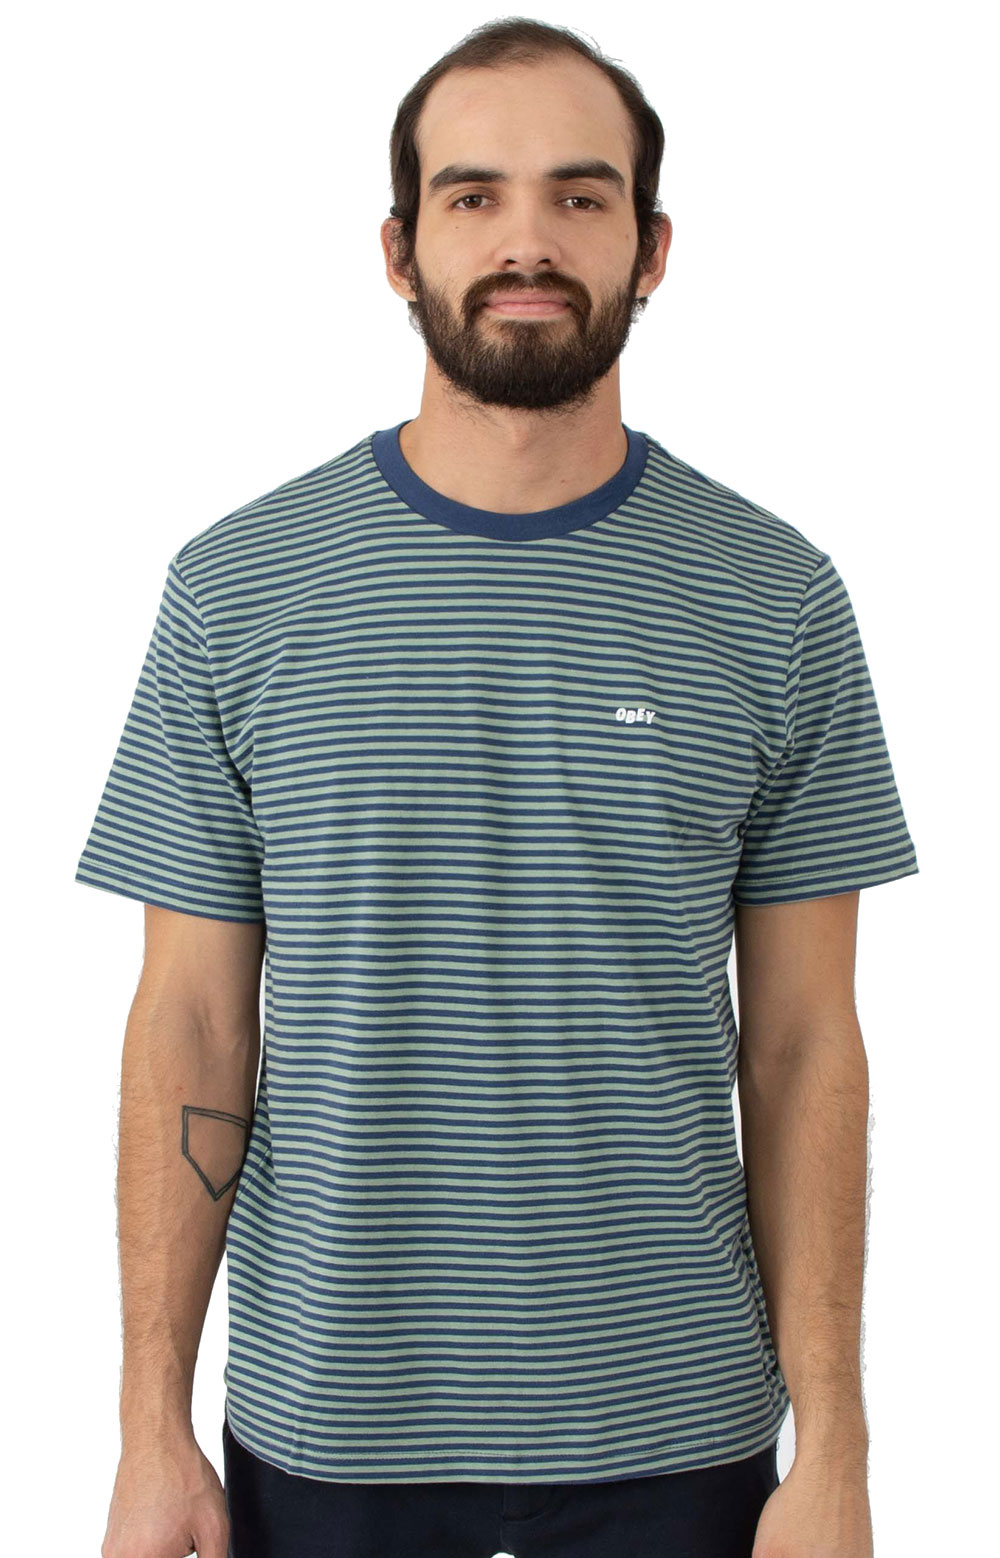 Apex T-Shirt - Light Sage Multi